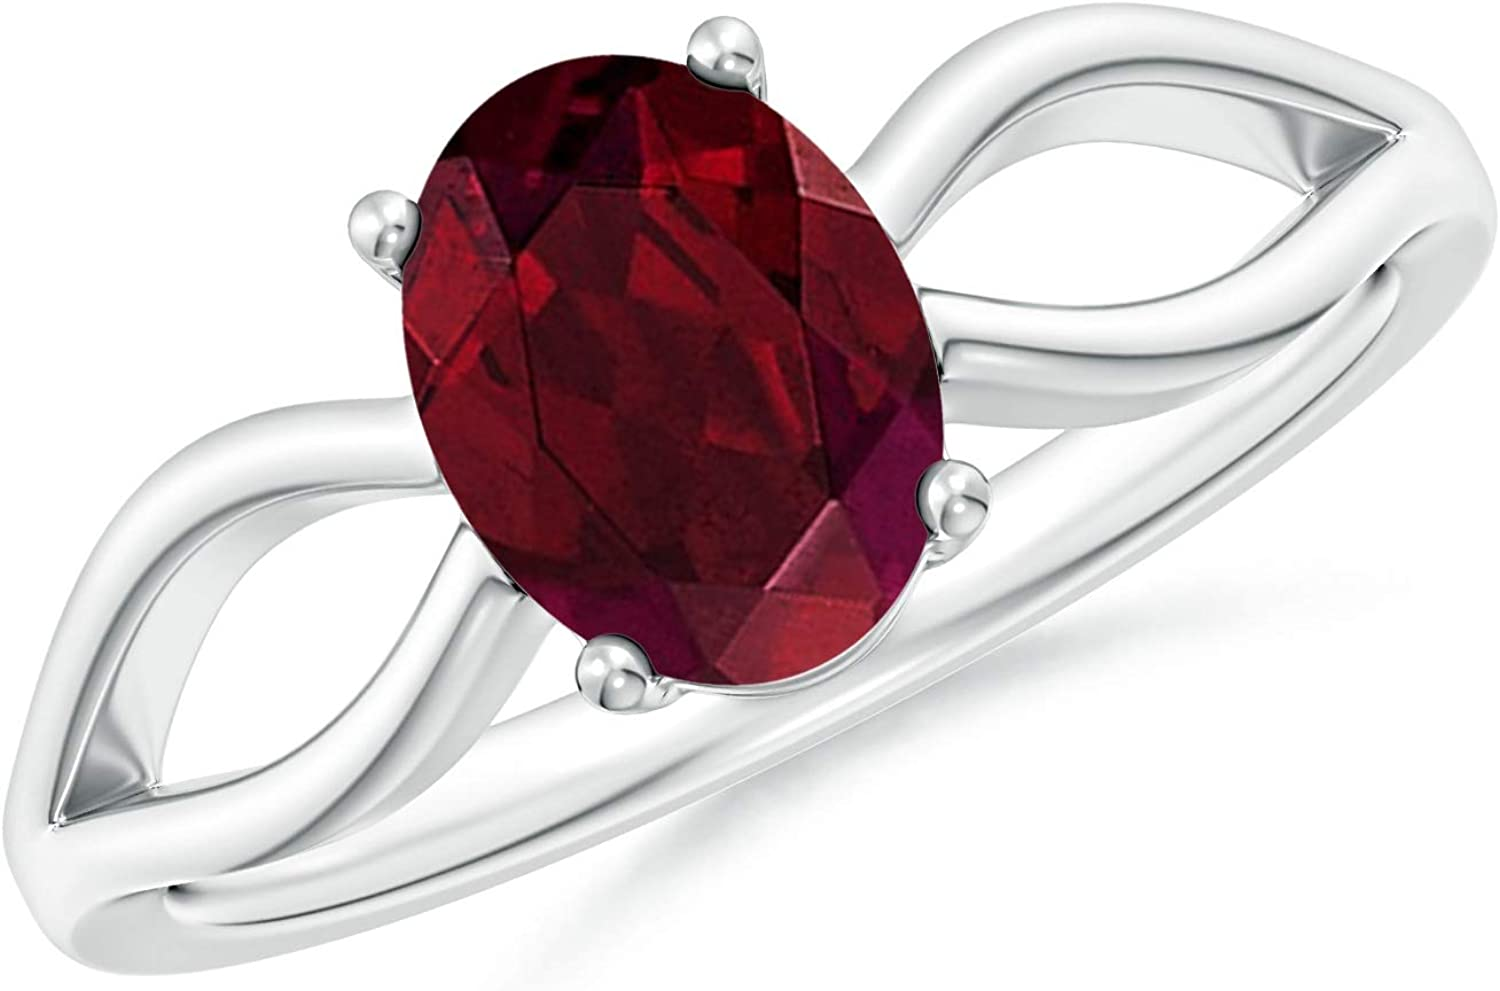 8x6mm Garnet Prong-Set Solitaire Natural Garnet Split Shank Ring